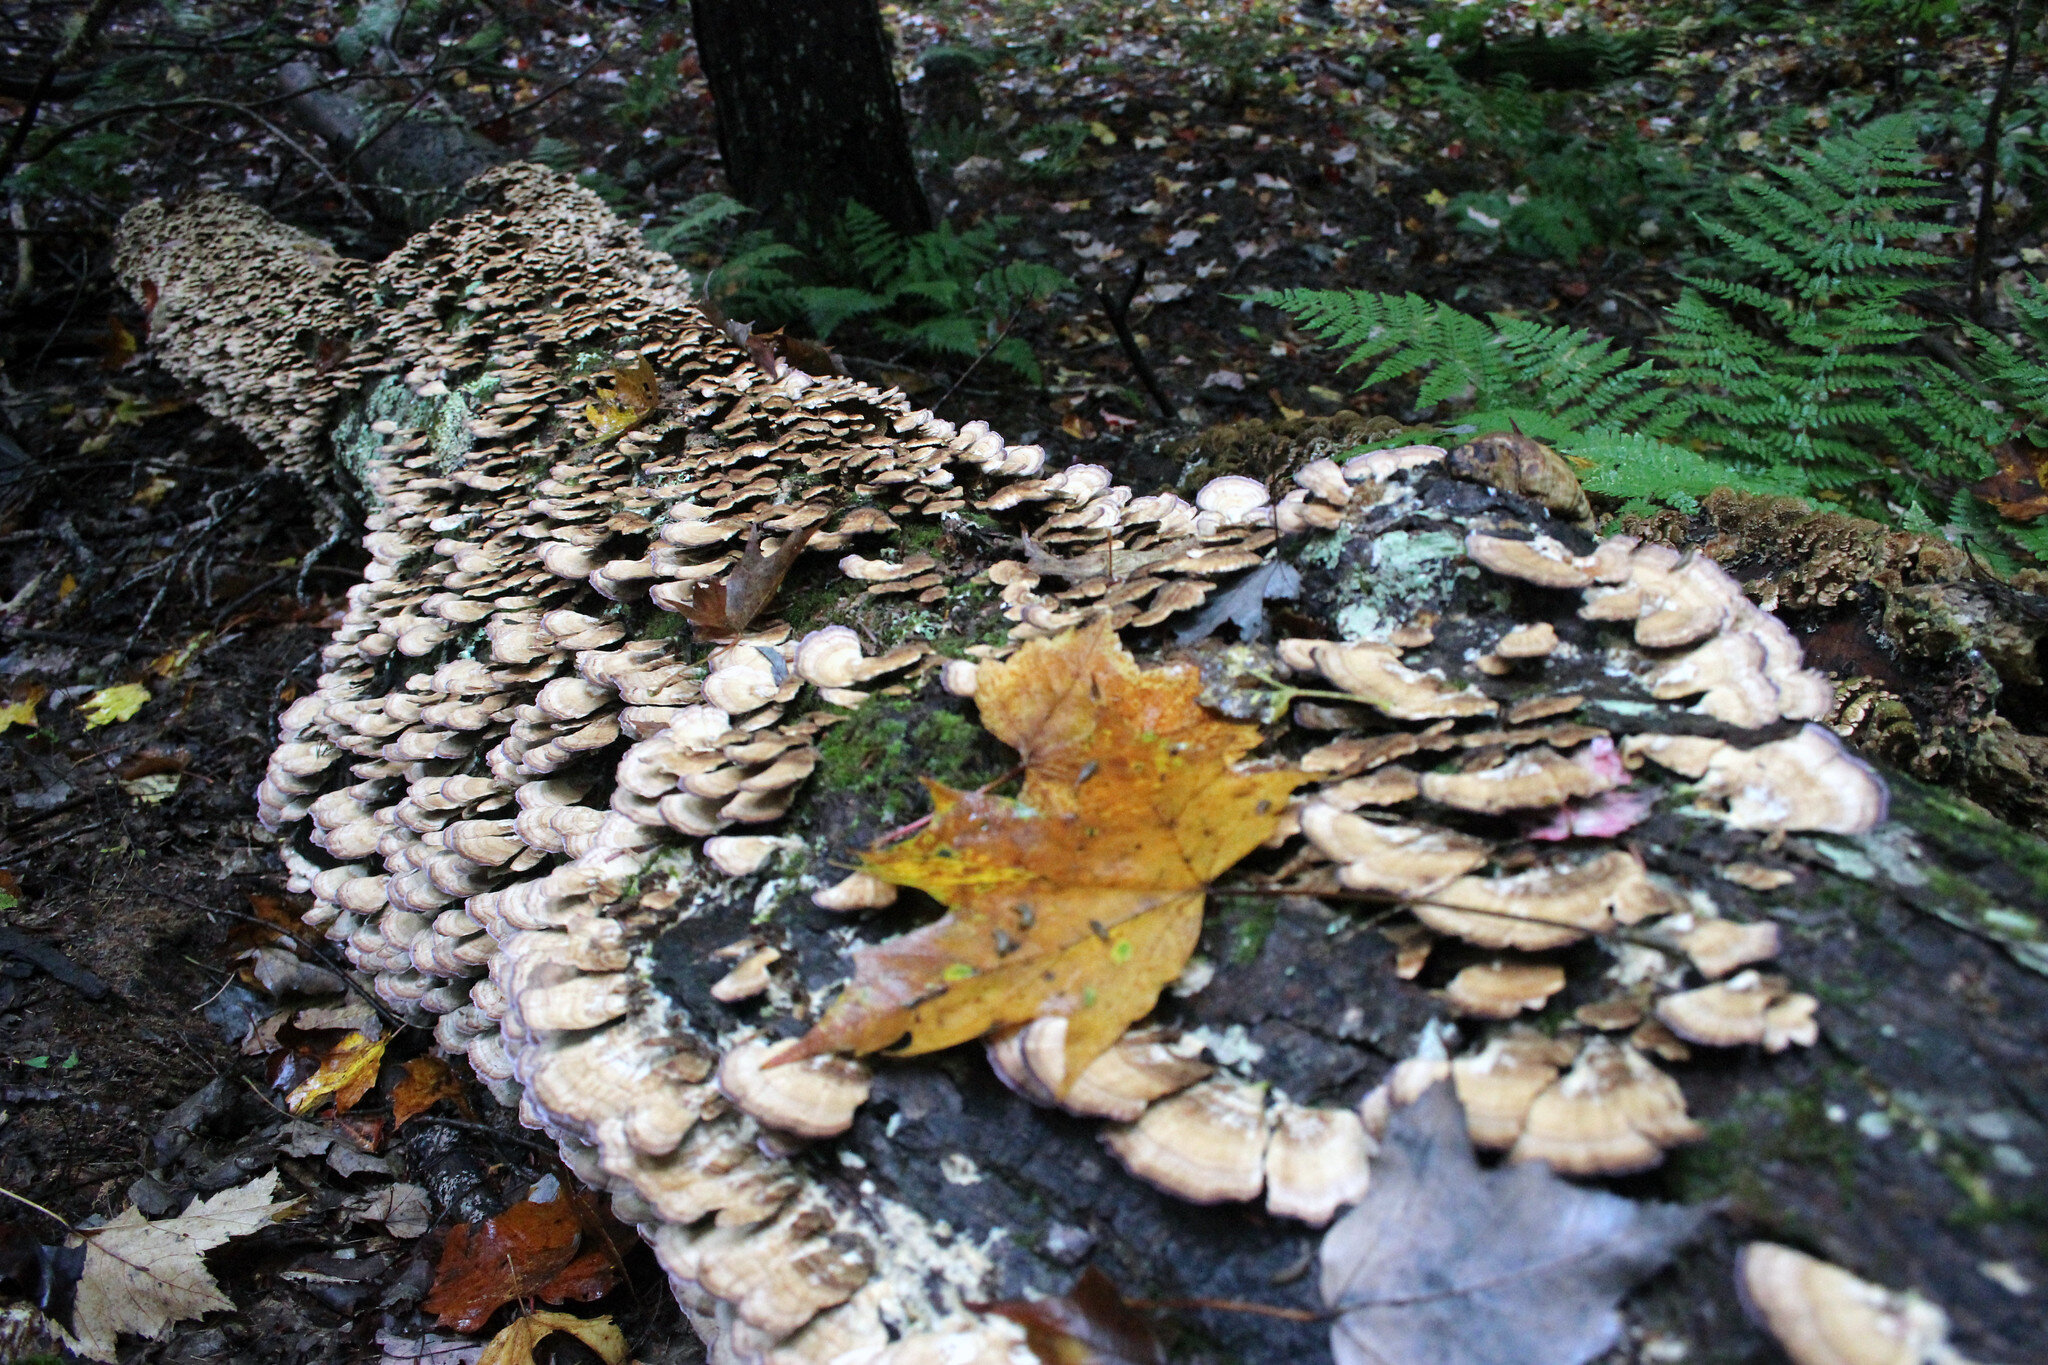 These shelf fungi are decomposing a fallen tree and turning it into mulch and soil. Image by Courtney Celley, via USFWS.